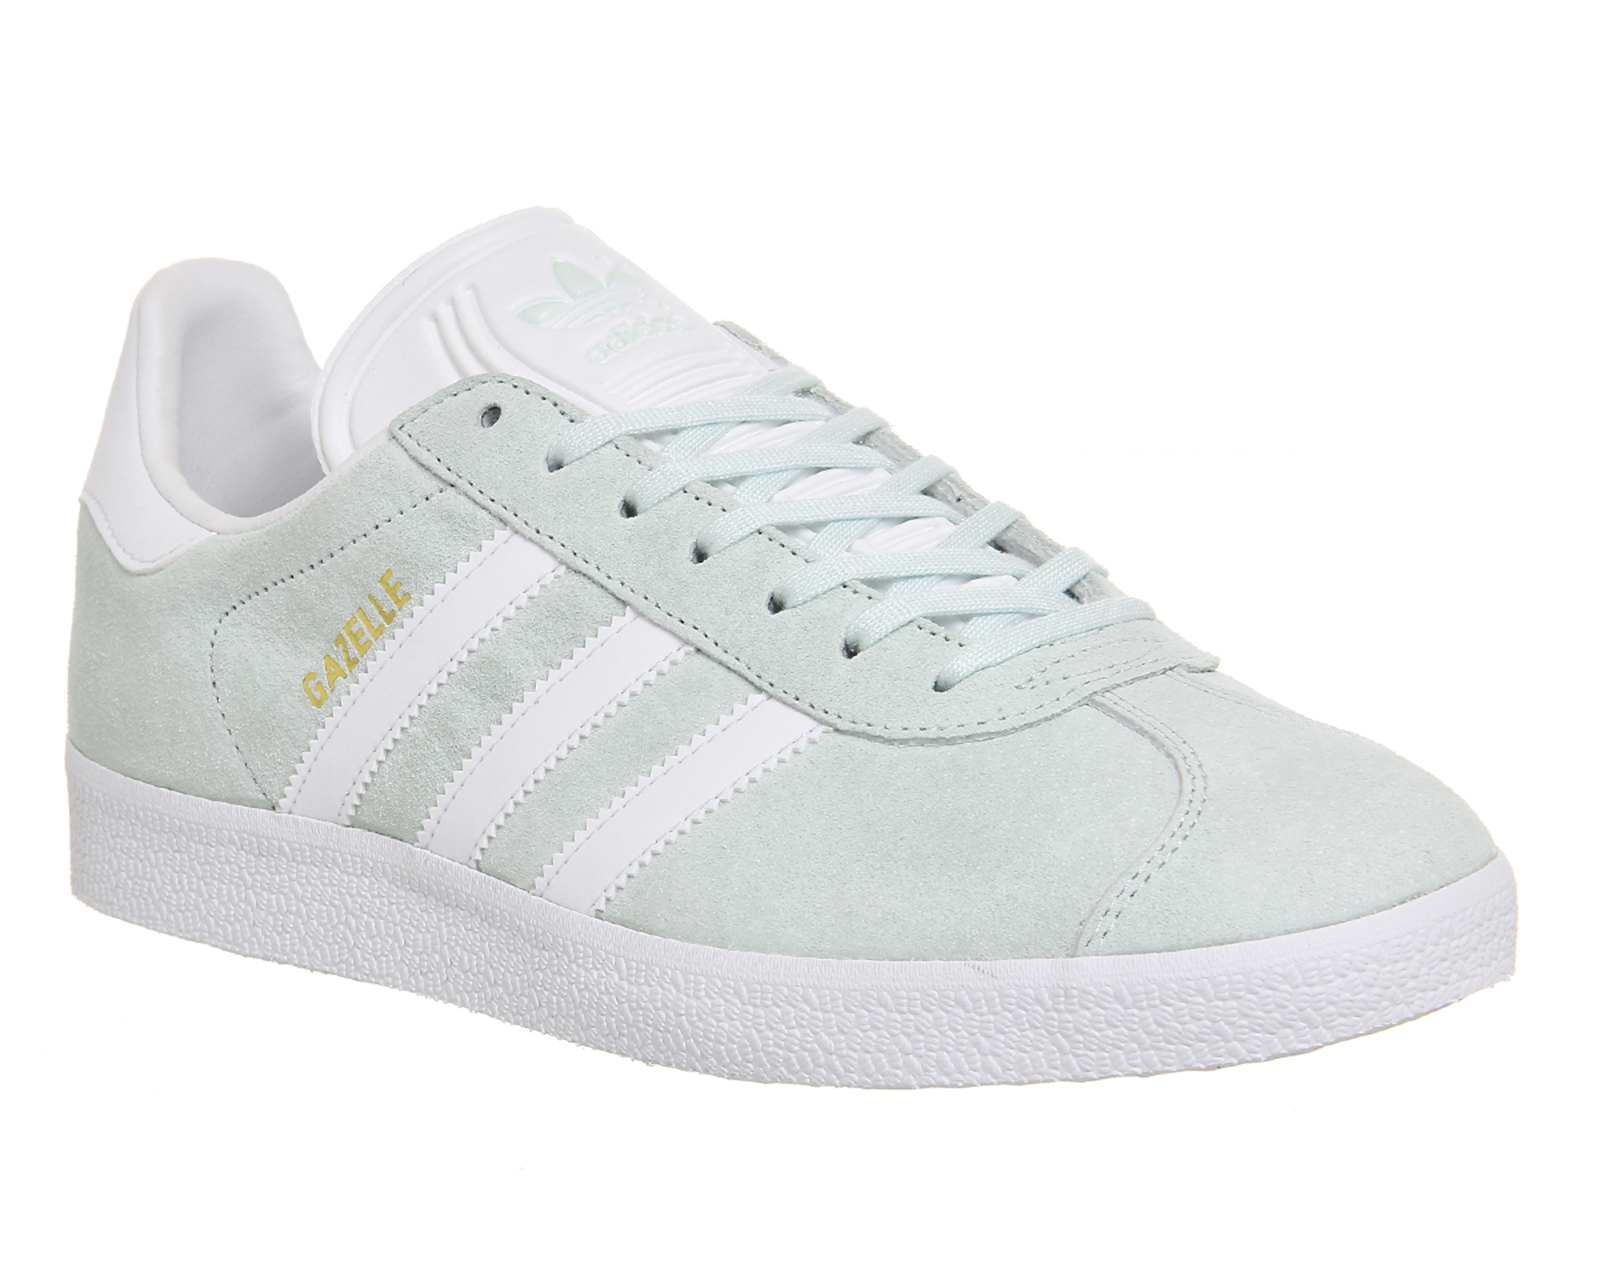 Adidas-Gazelle-ICE-MINT-WHITE-Trainers-Shoes